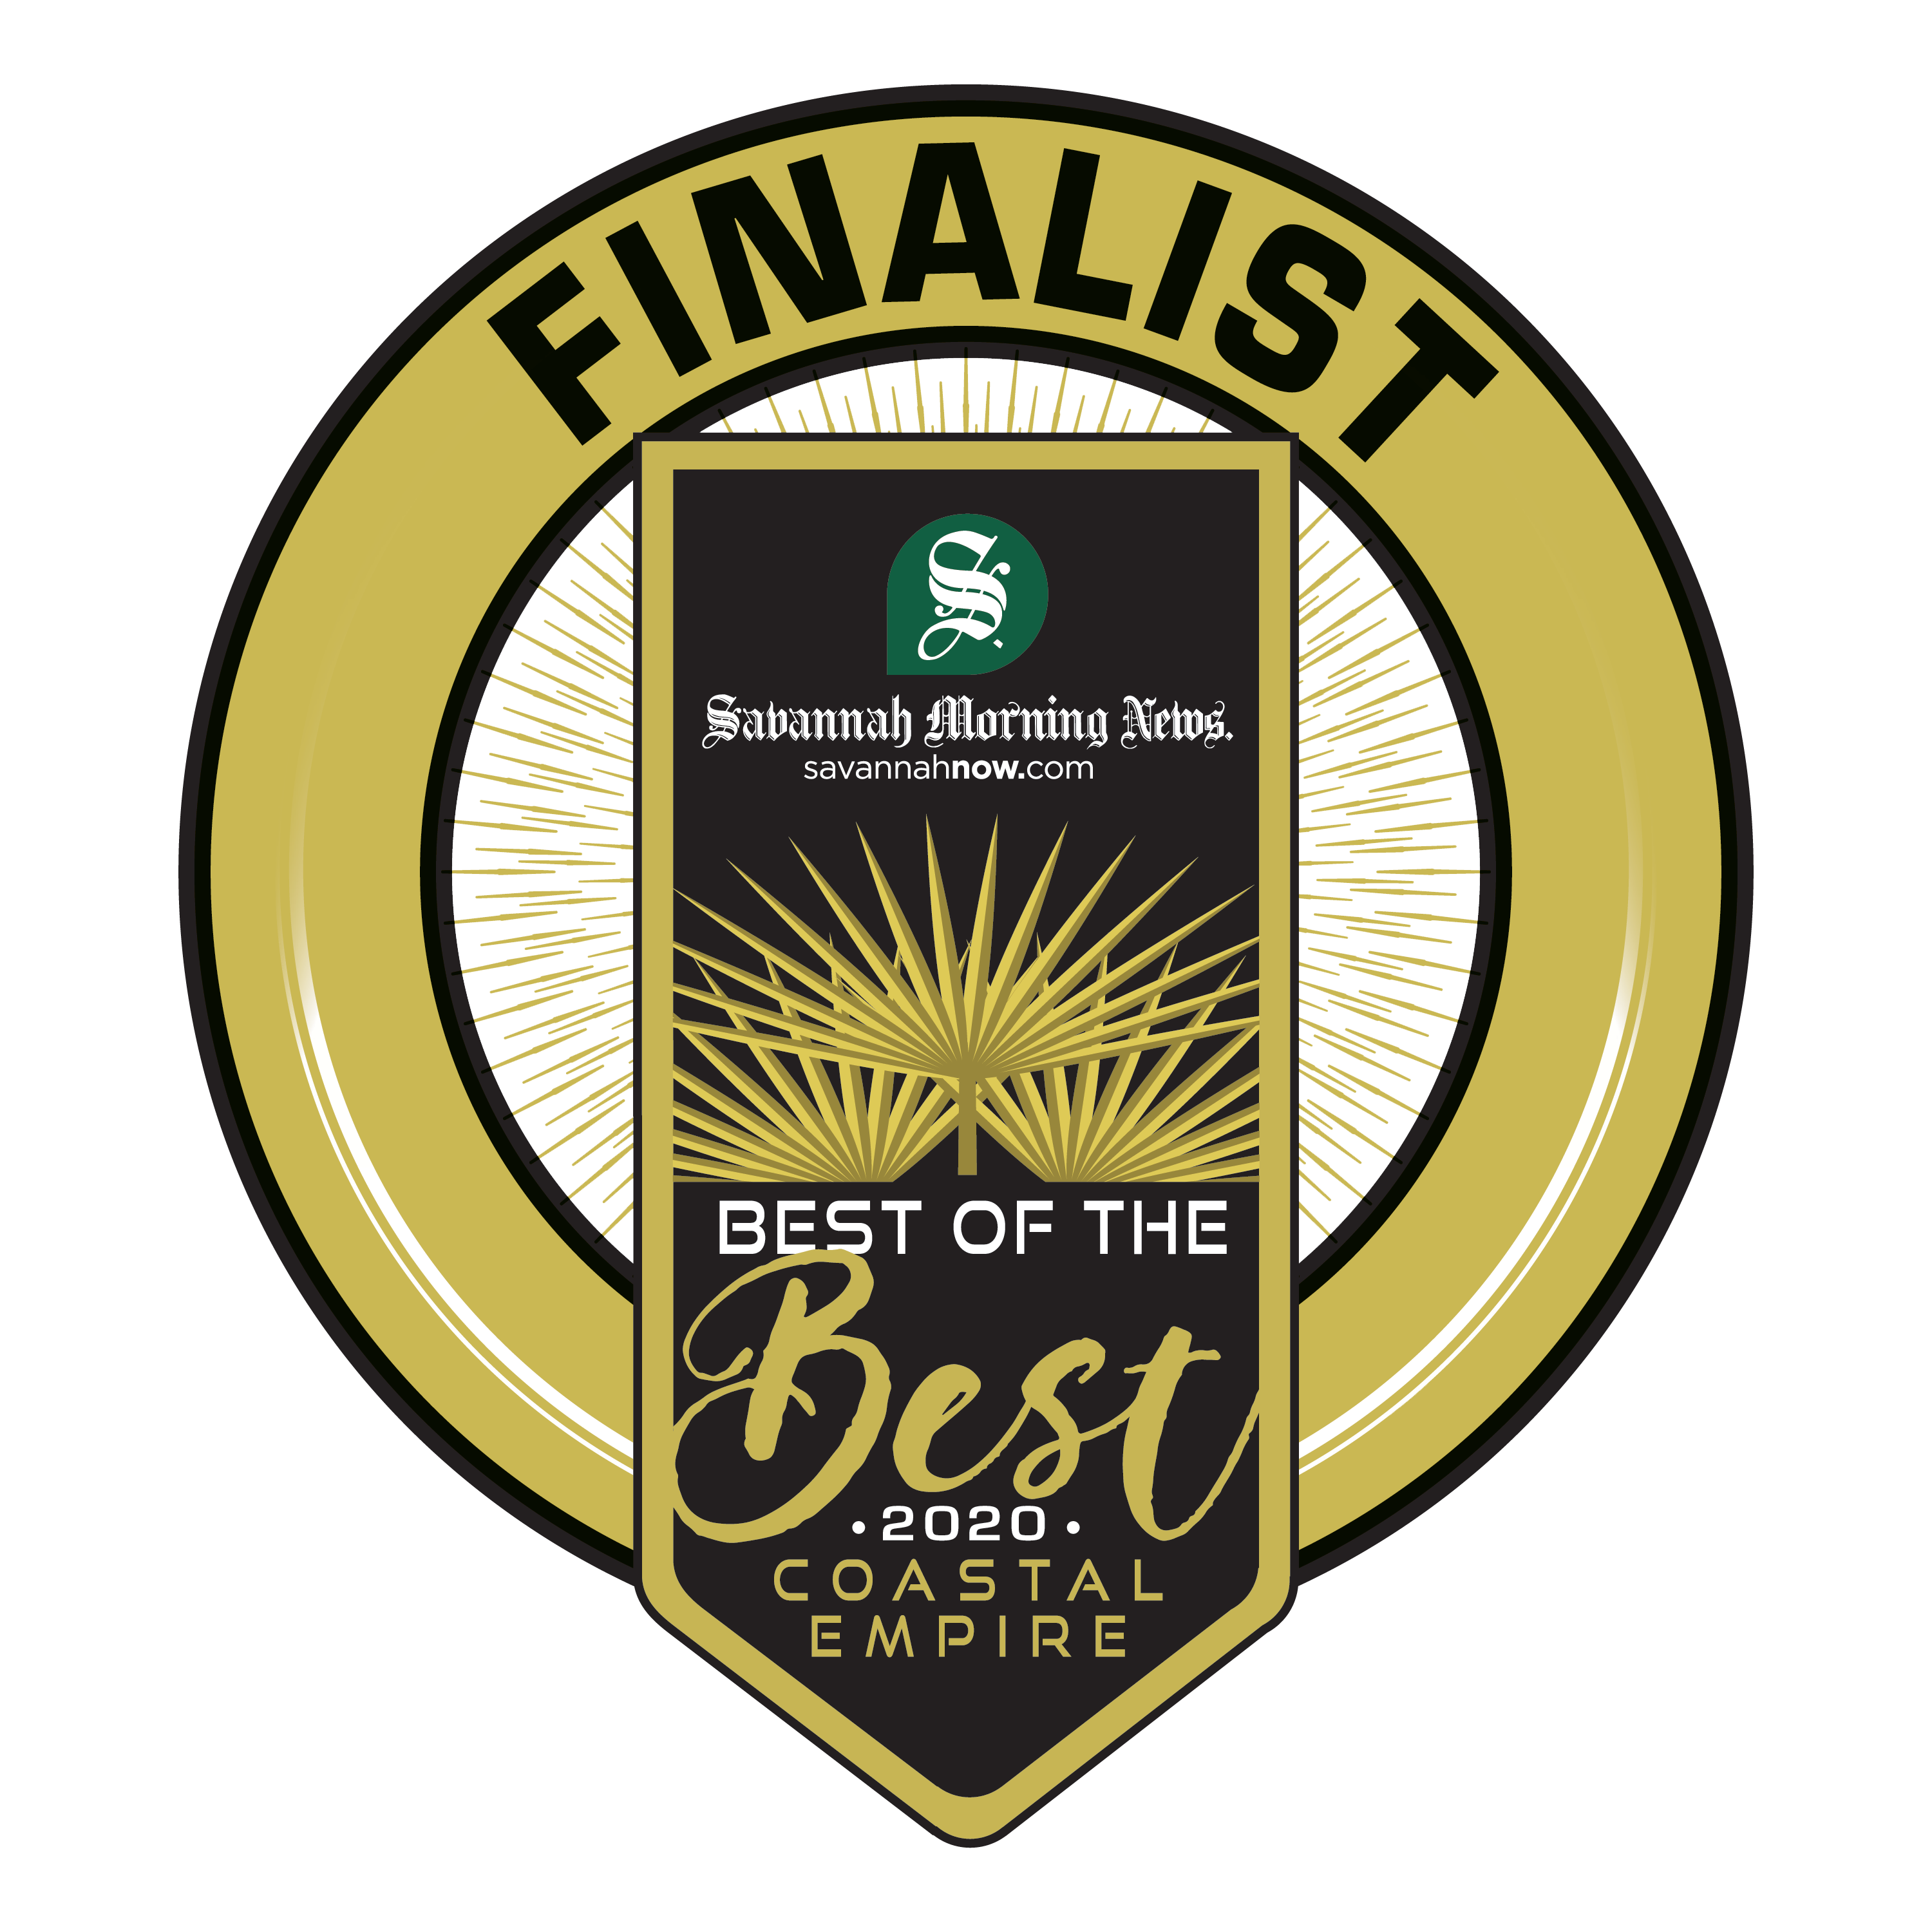 2020 Finalist Best of the Best Hospital in the Coastal Empire